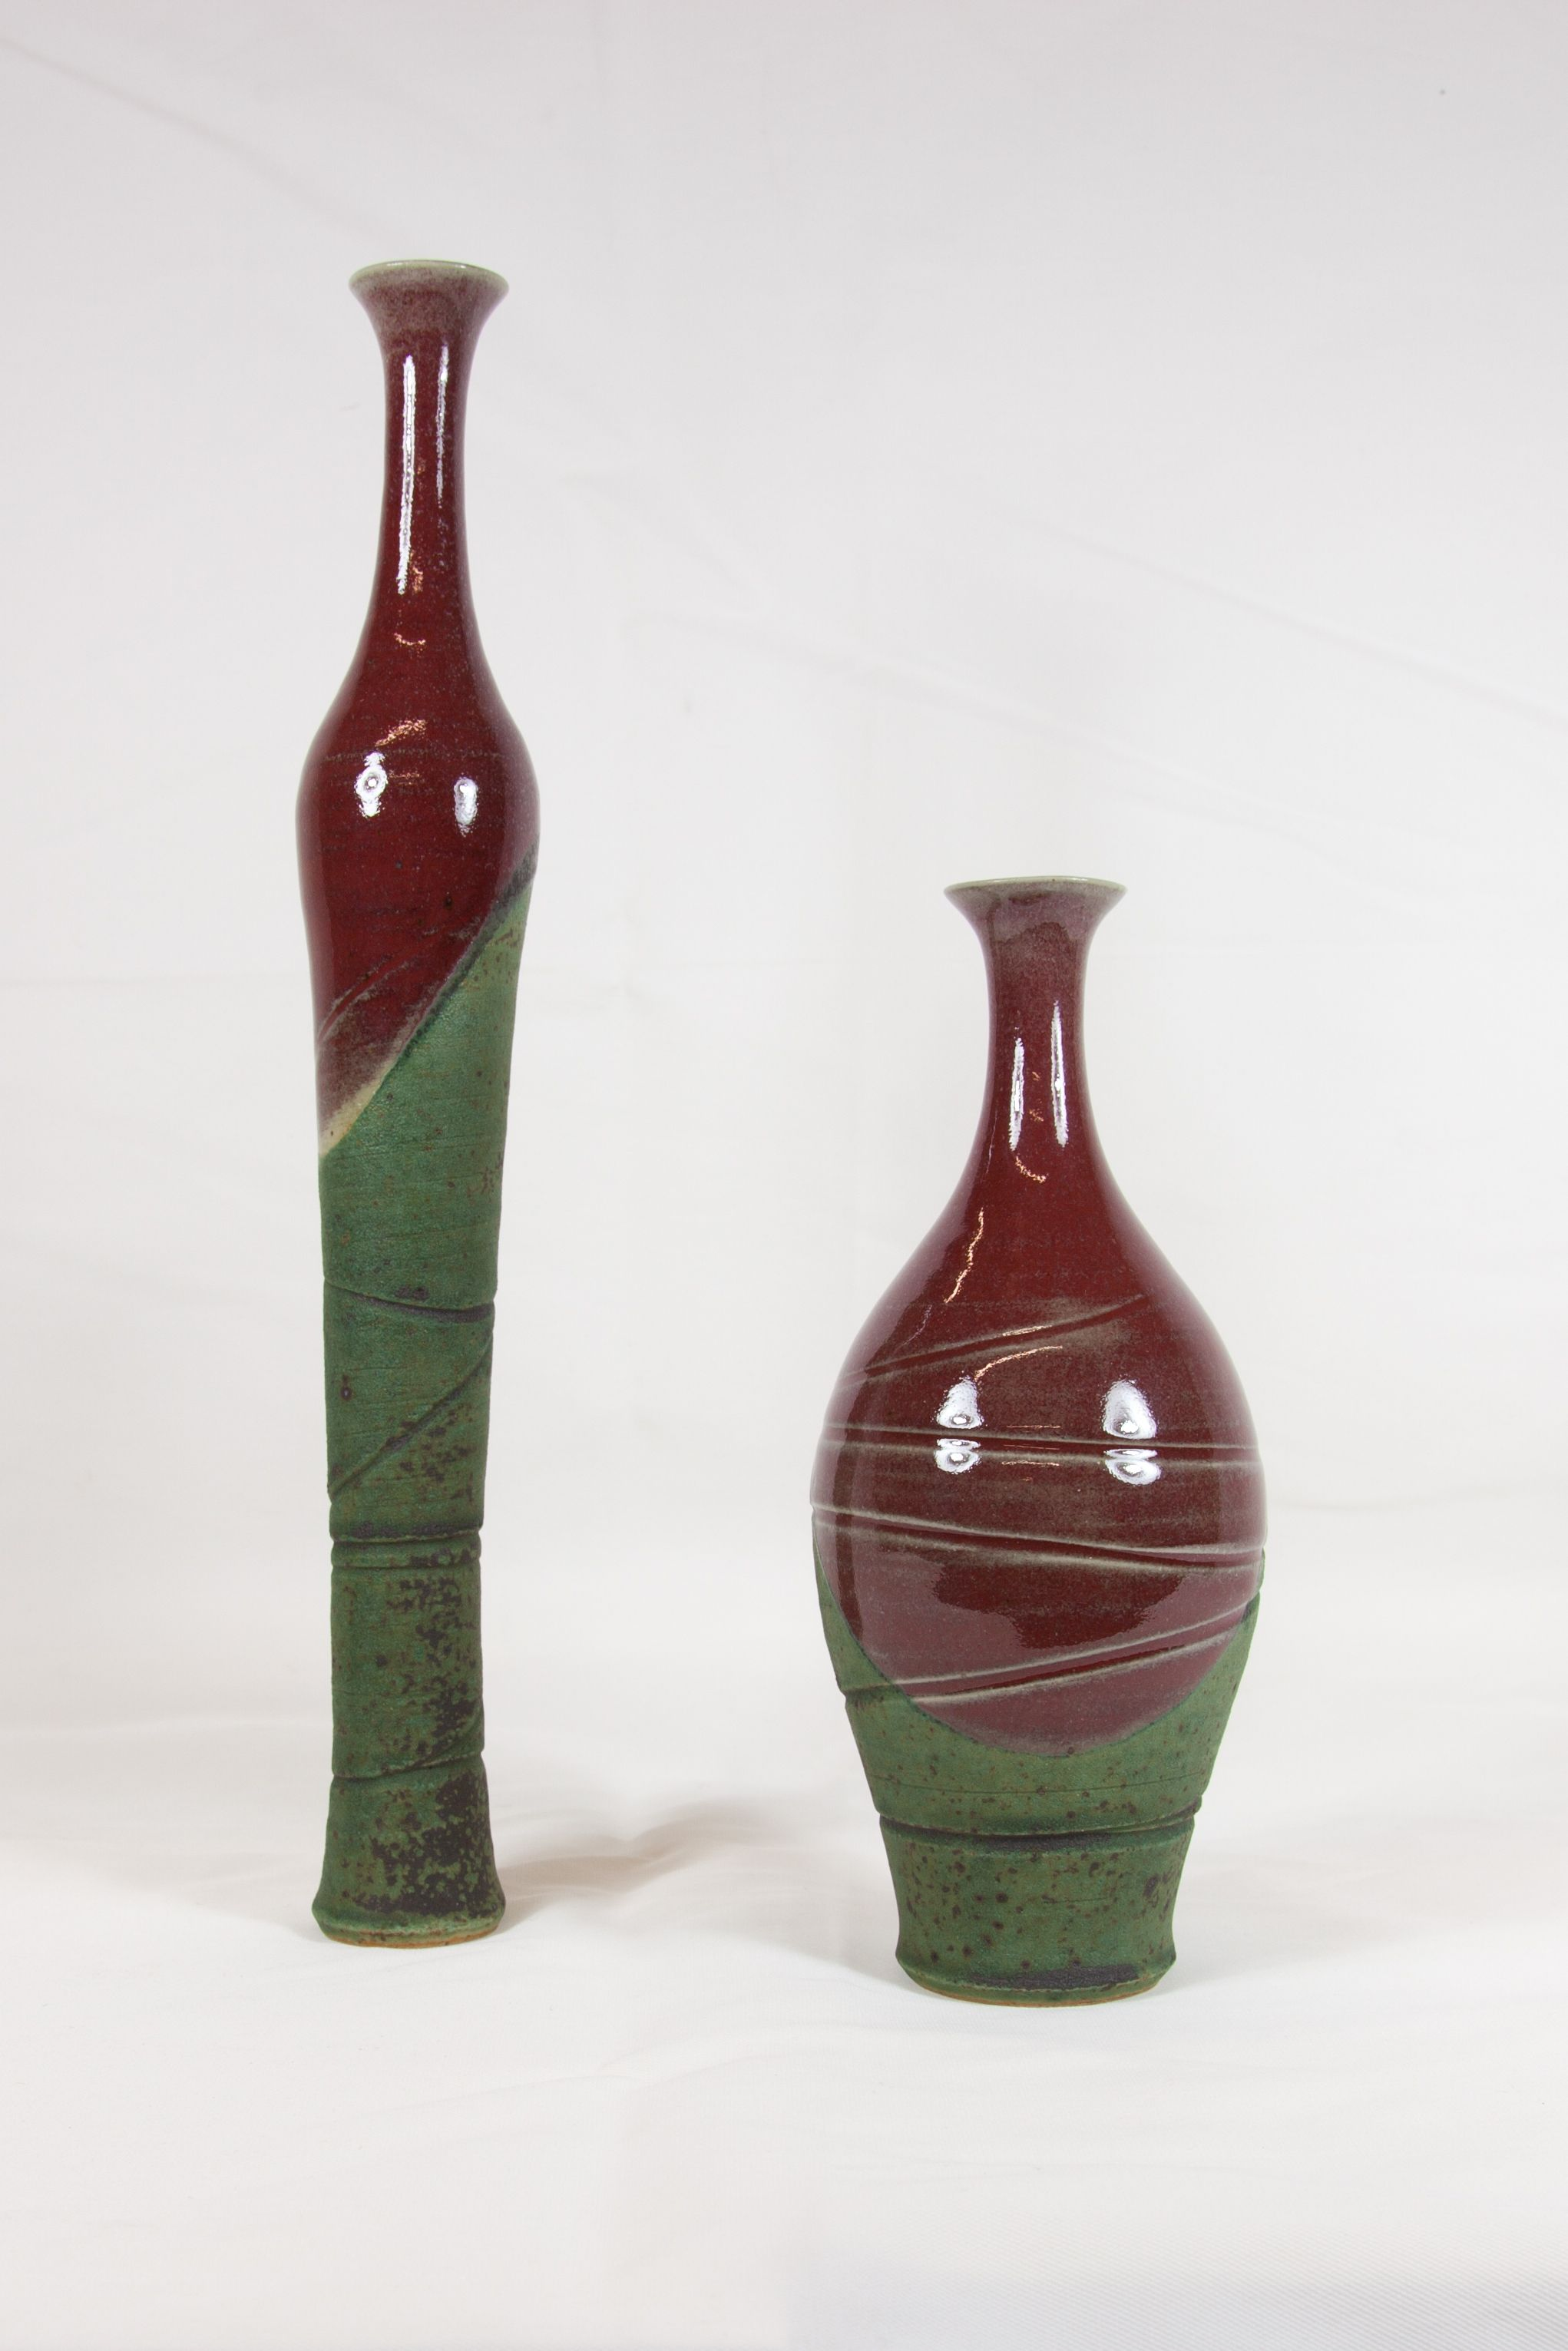 Tall Short Vase In Red Pottery Unique Decorative Pieces That Add A Touch Of Elegance To Any Table Or E